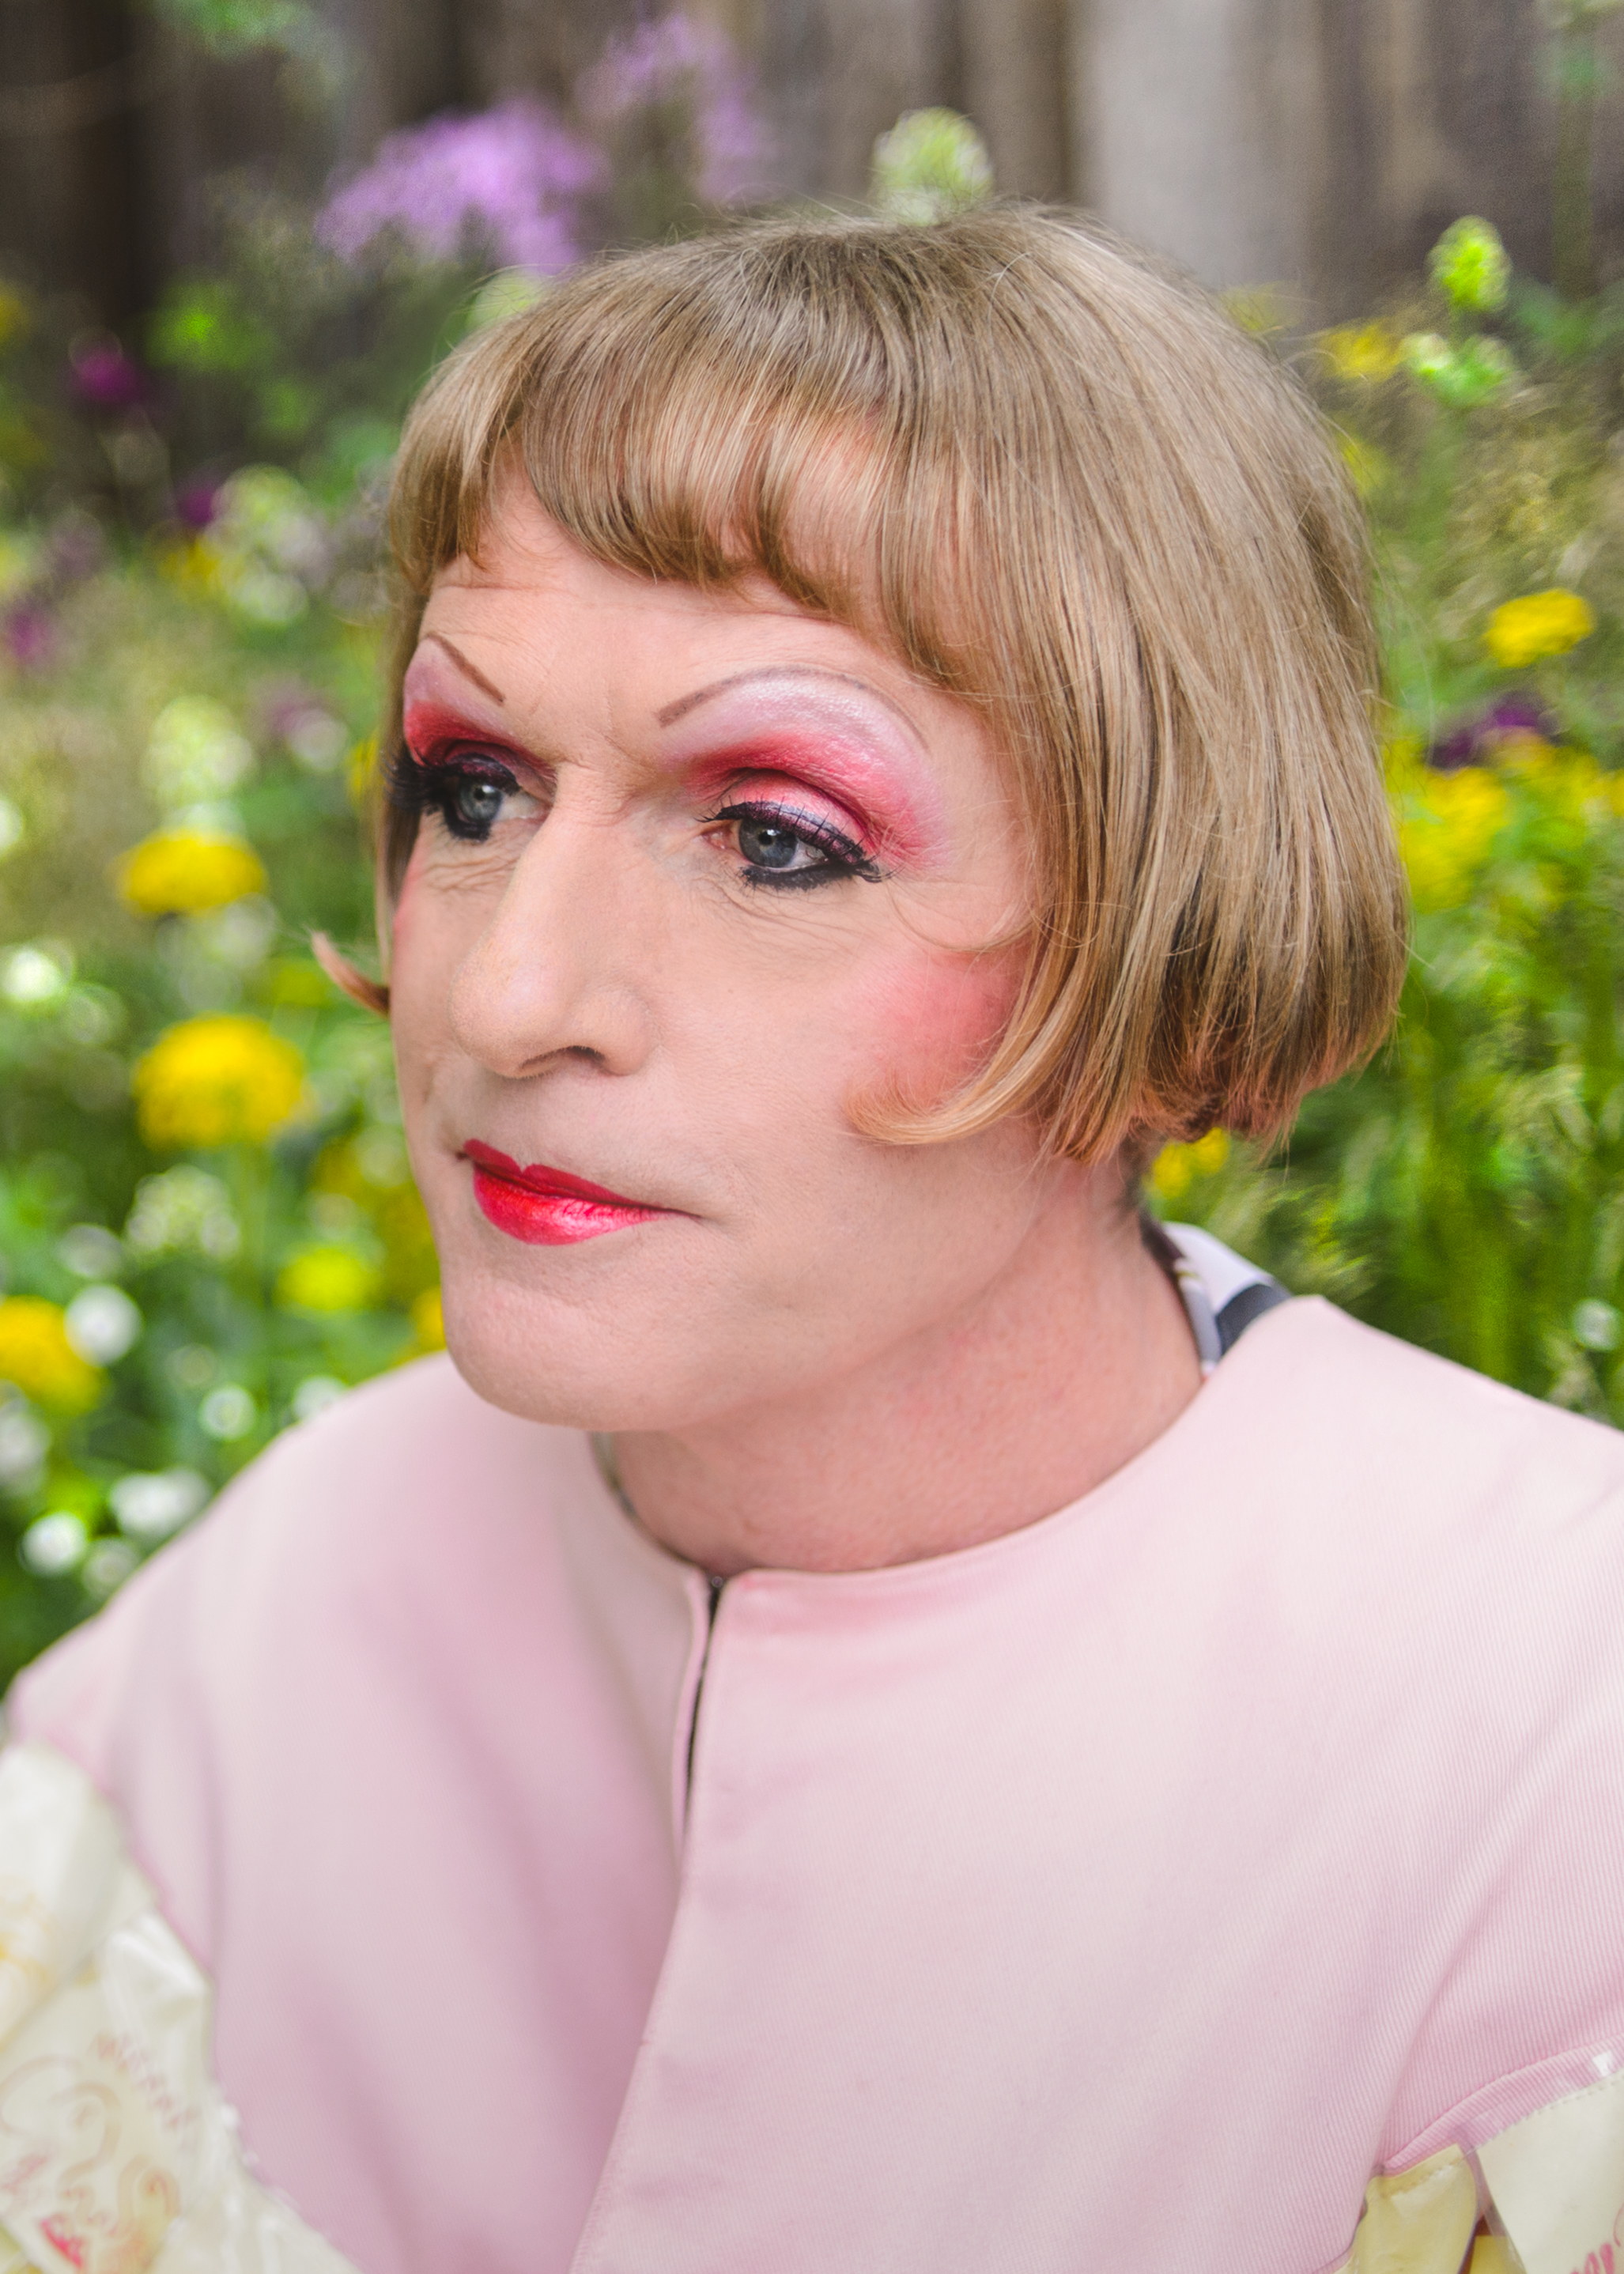 Grayson_Perry_Portrait-2.jpg